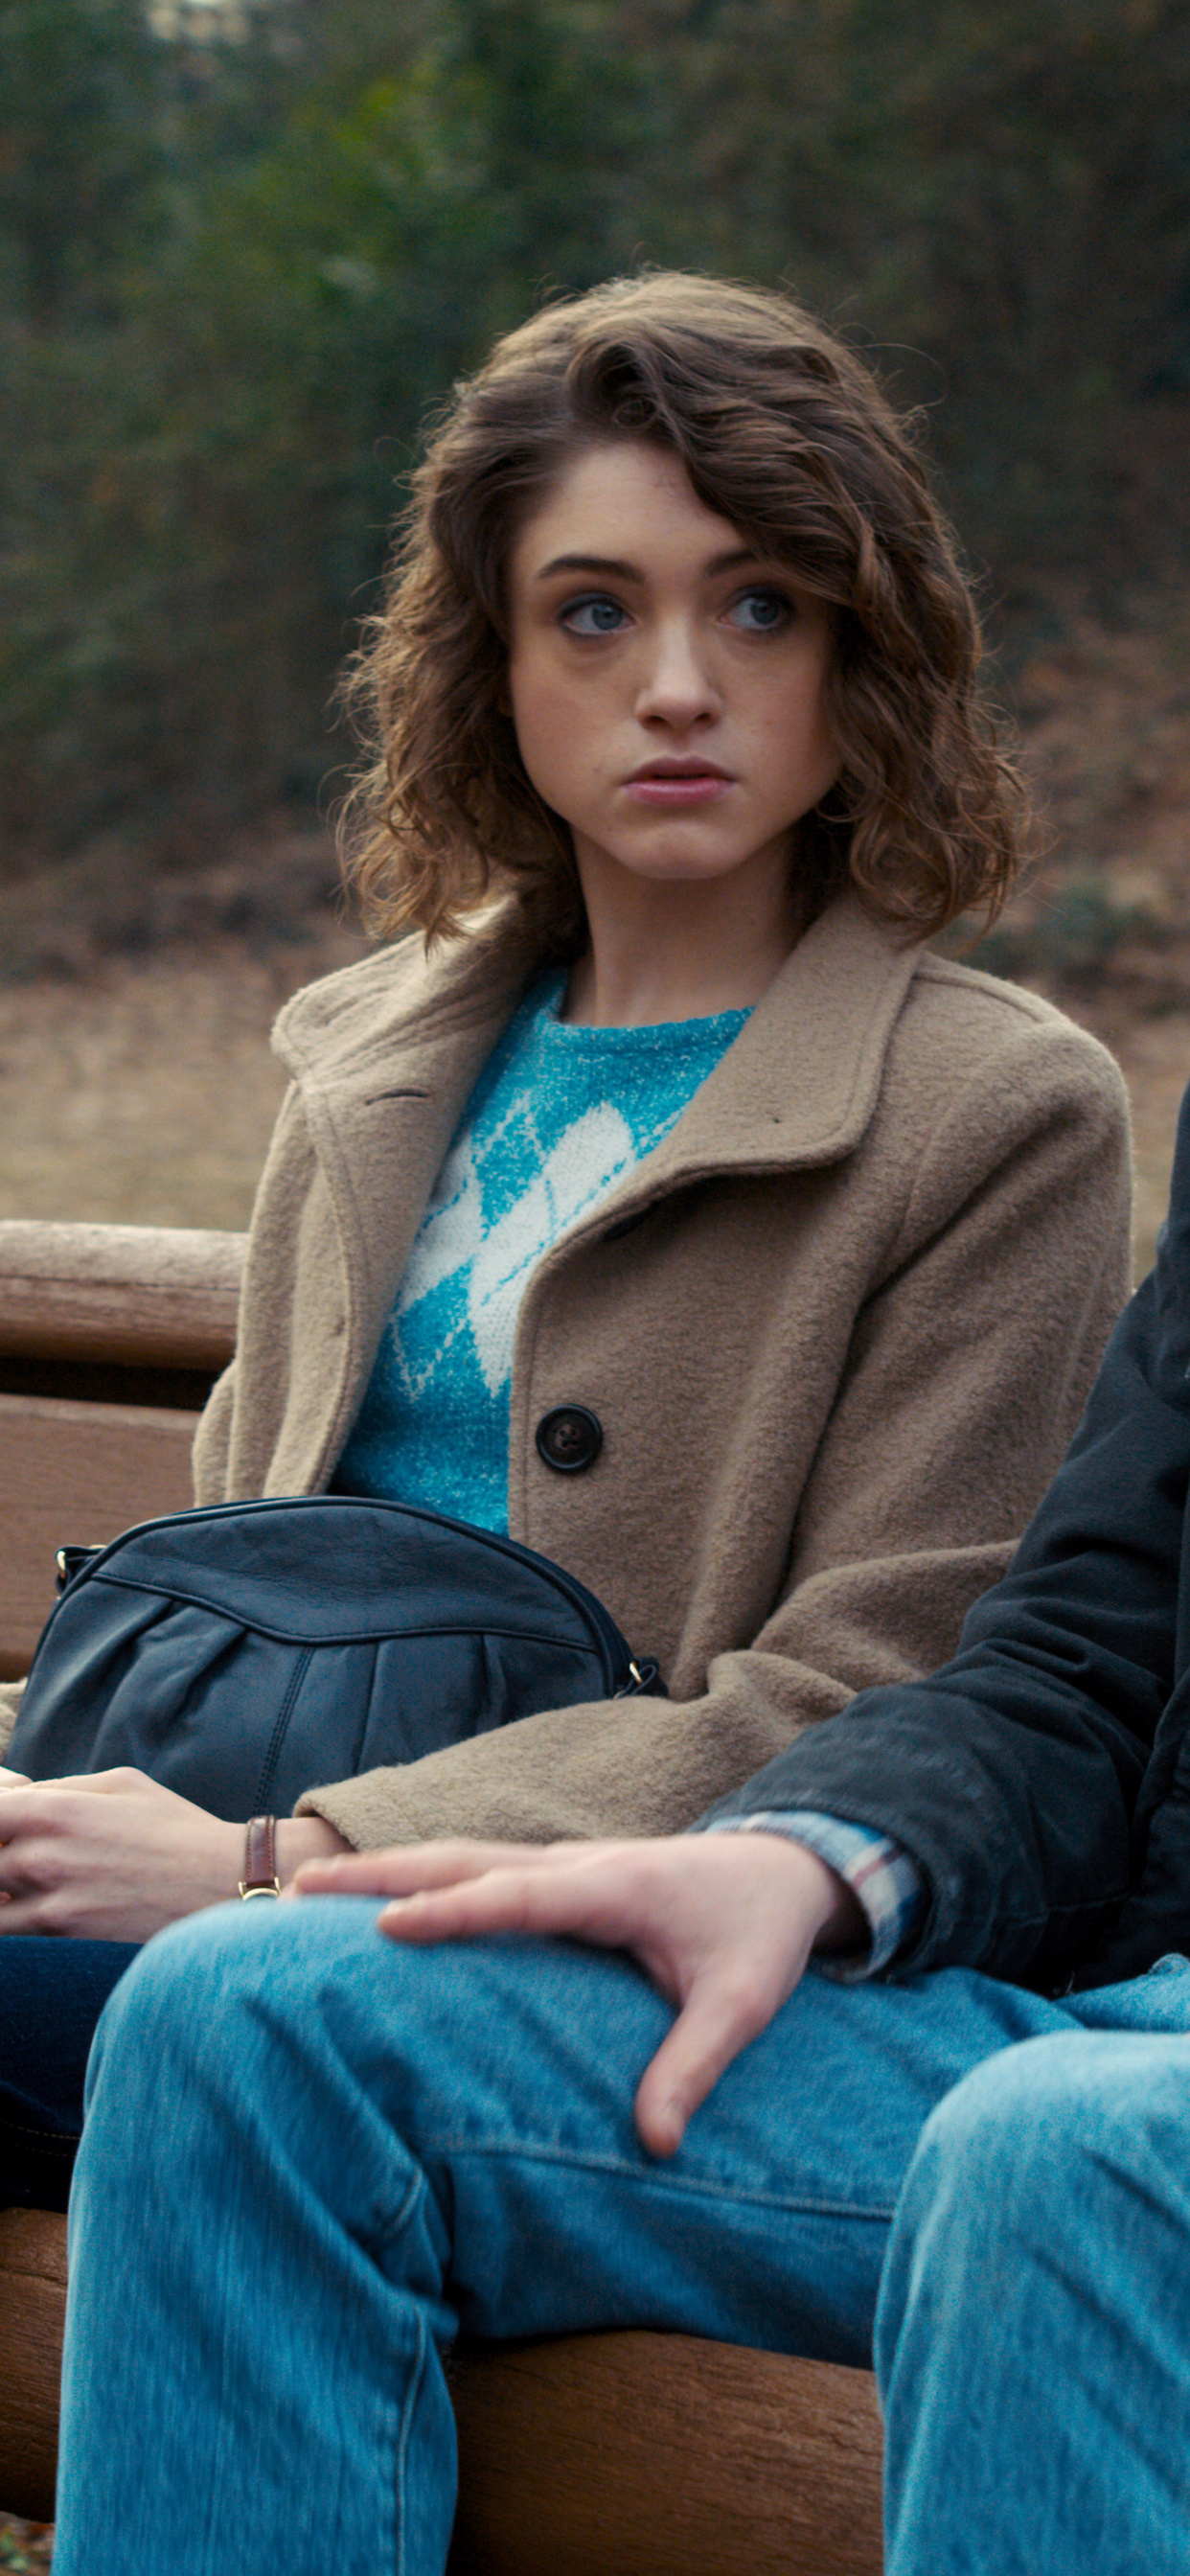 stranger-things-natalia-dyer-as-nancy-jonathan-byers-as-charlie-xw.jpg